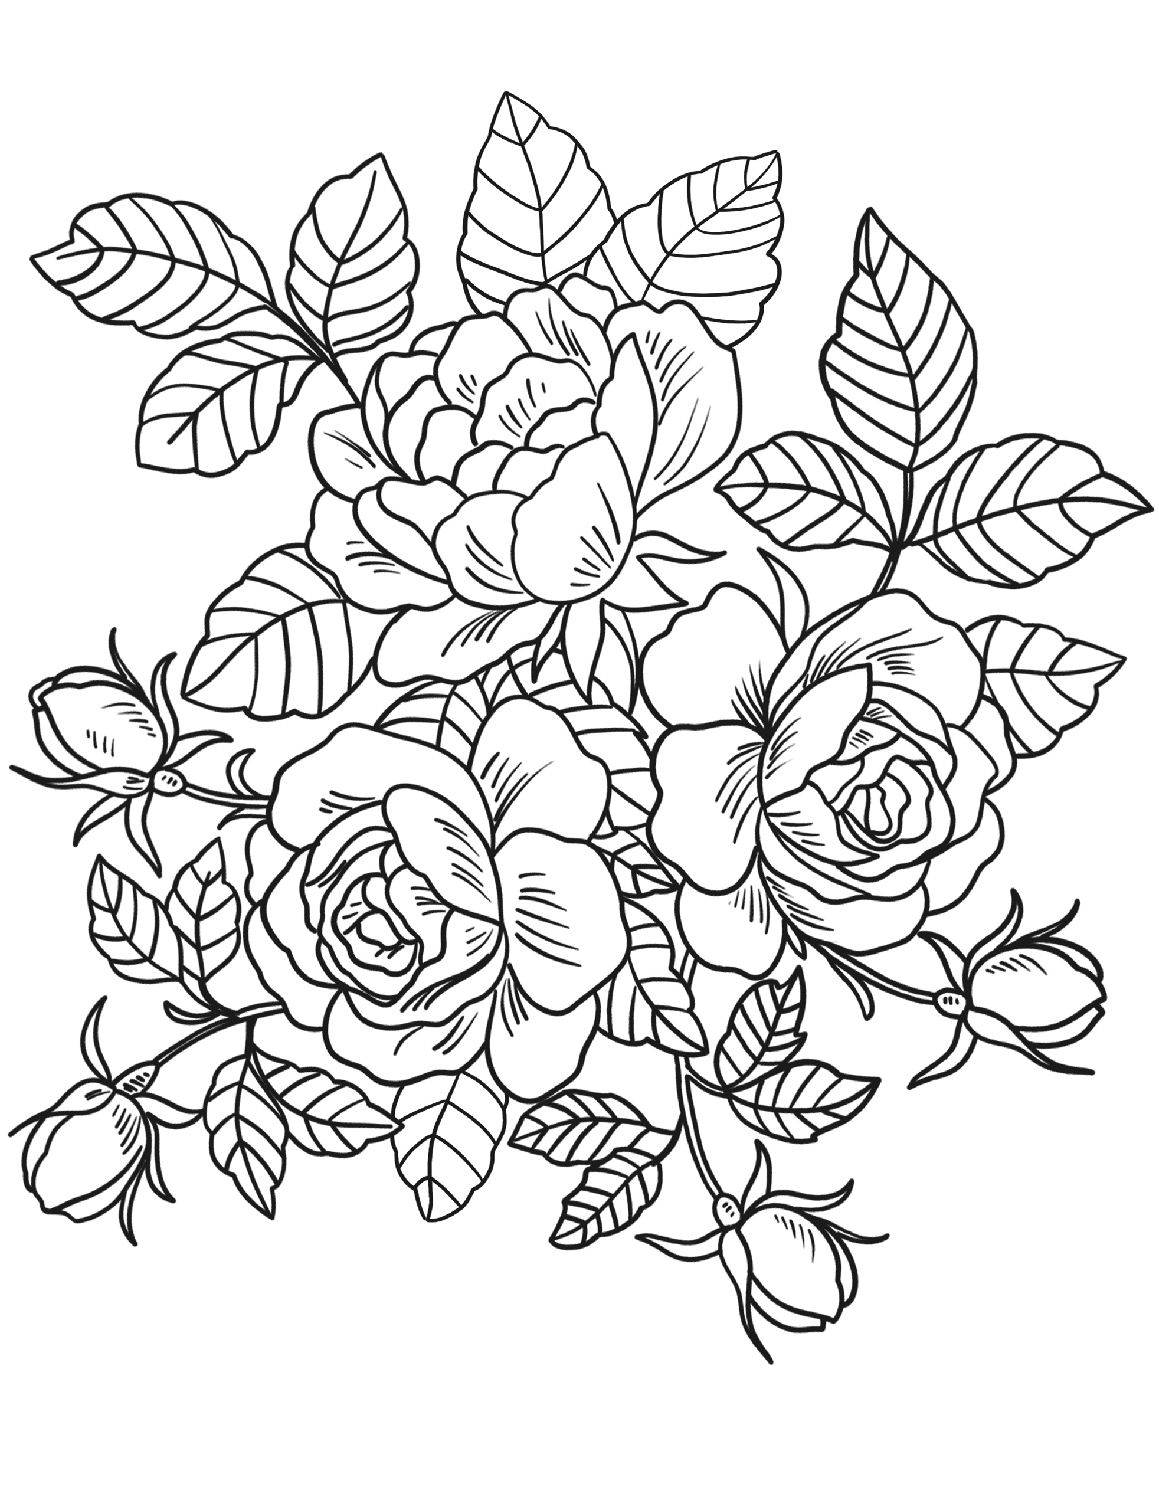 picture of flower to color flower pictures to print and color picture of to flower color